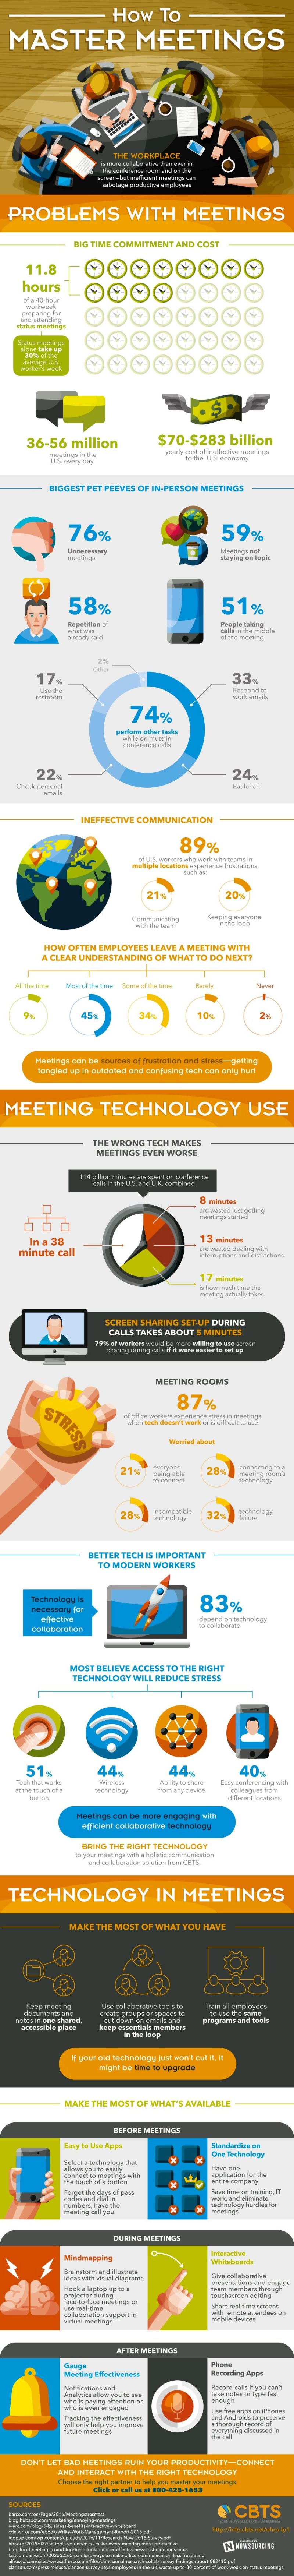 How Do You Use Technology To Master More Collaborative And Productive Meetings Infographic Infographic Marketing Infographic Business Infographic